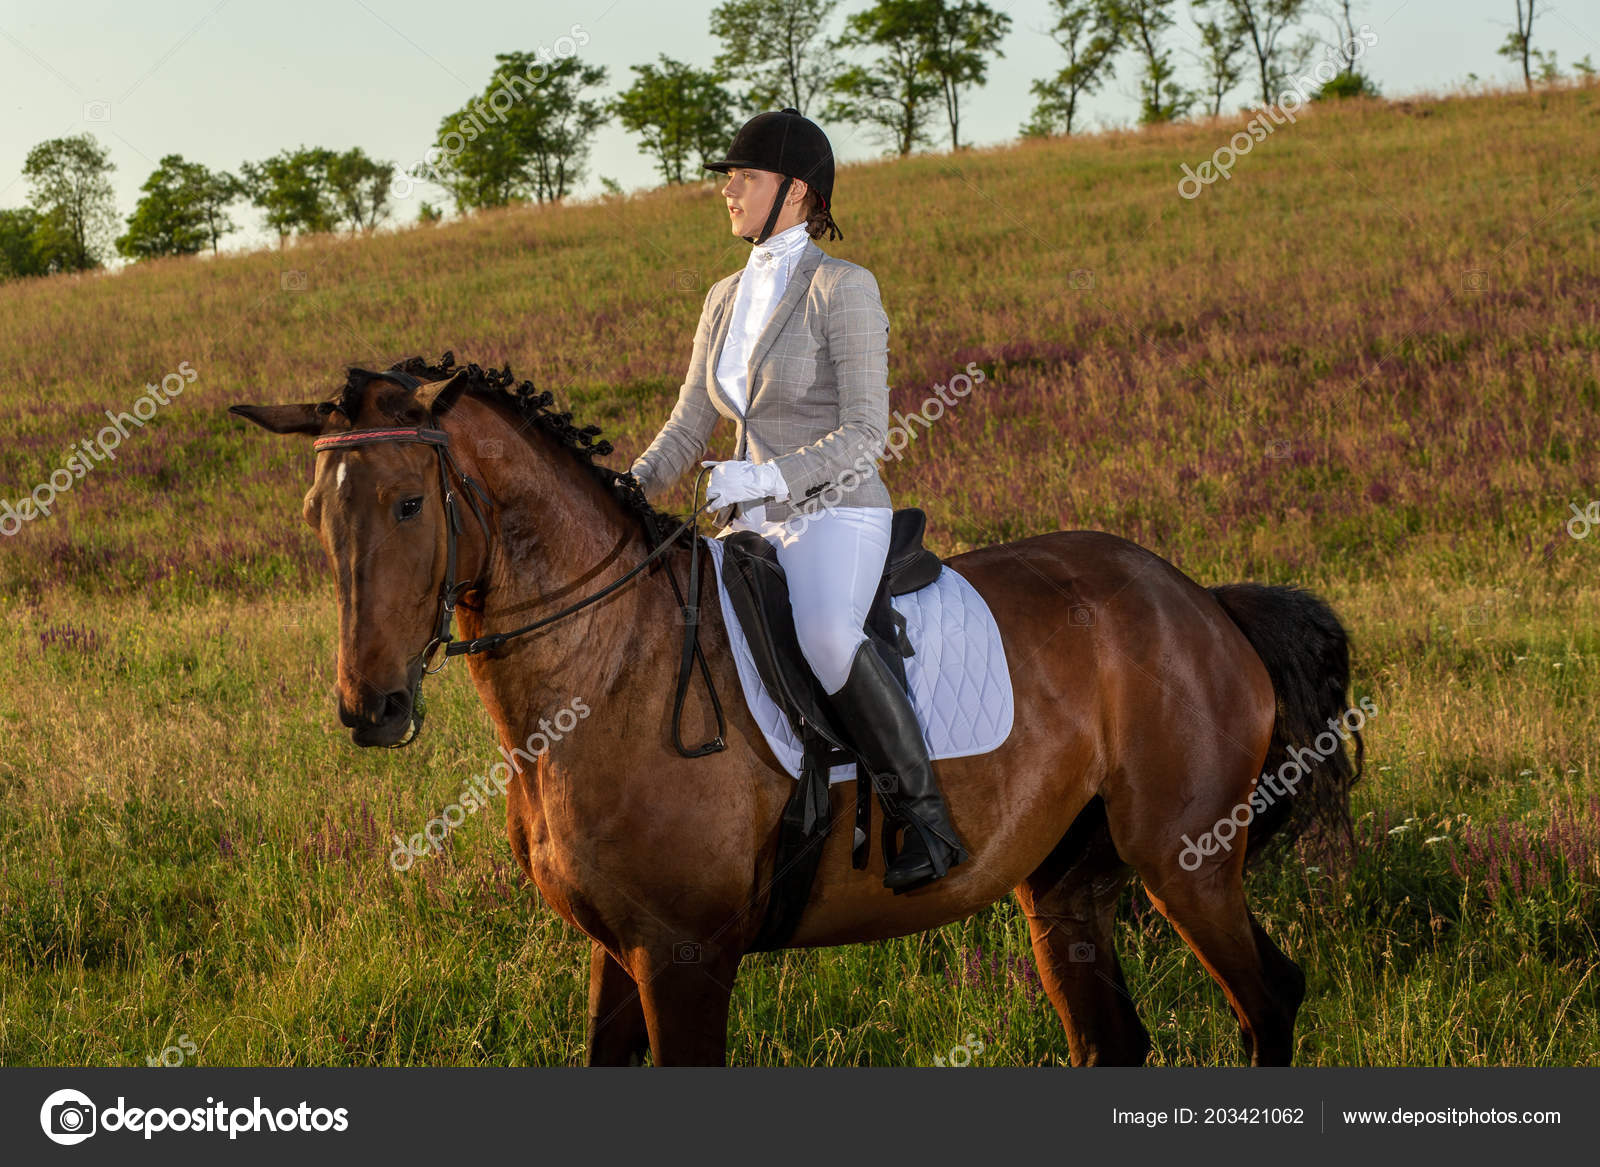 Young Woman Rider With Her Horse In Evening Sunset Light Outdoor Photography In Lifestyle Mood Stock Photo C Nazarov Dnepr Gmail Com 203421062